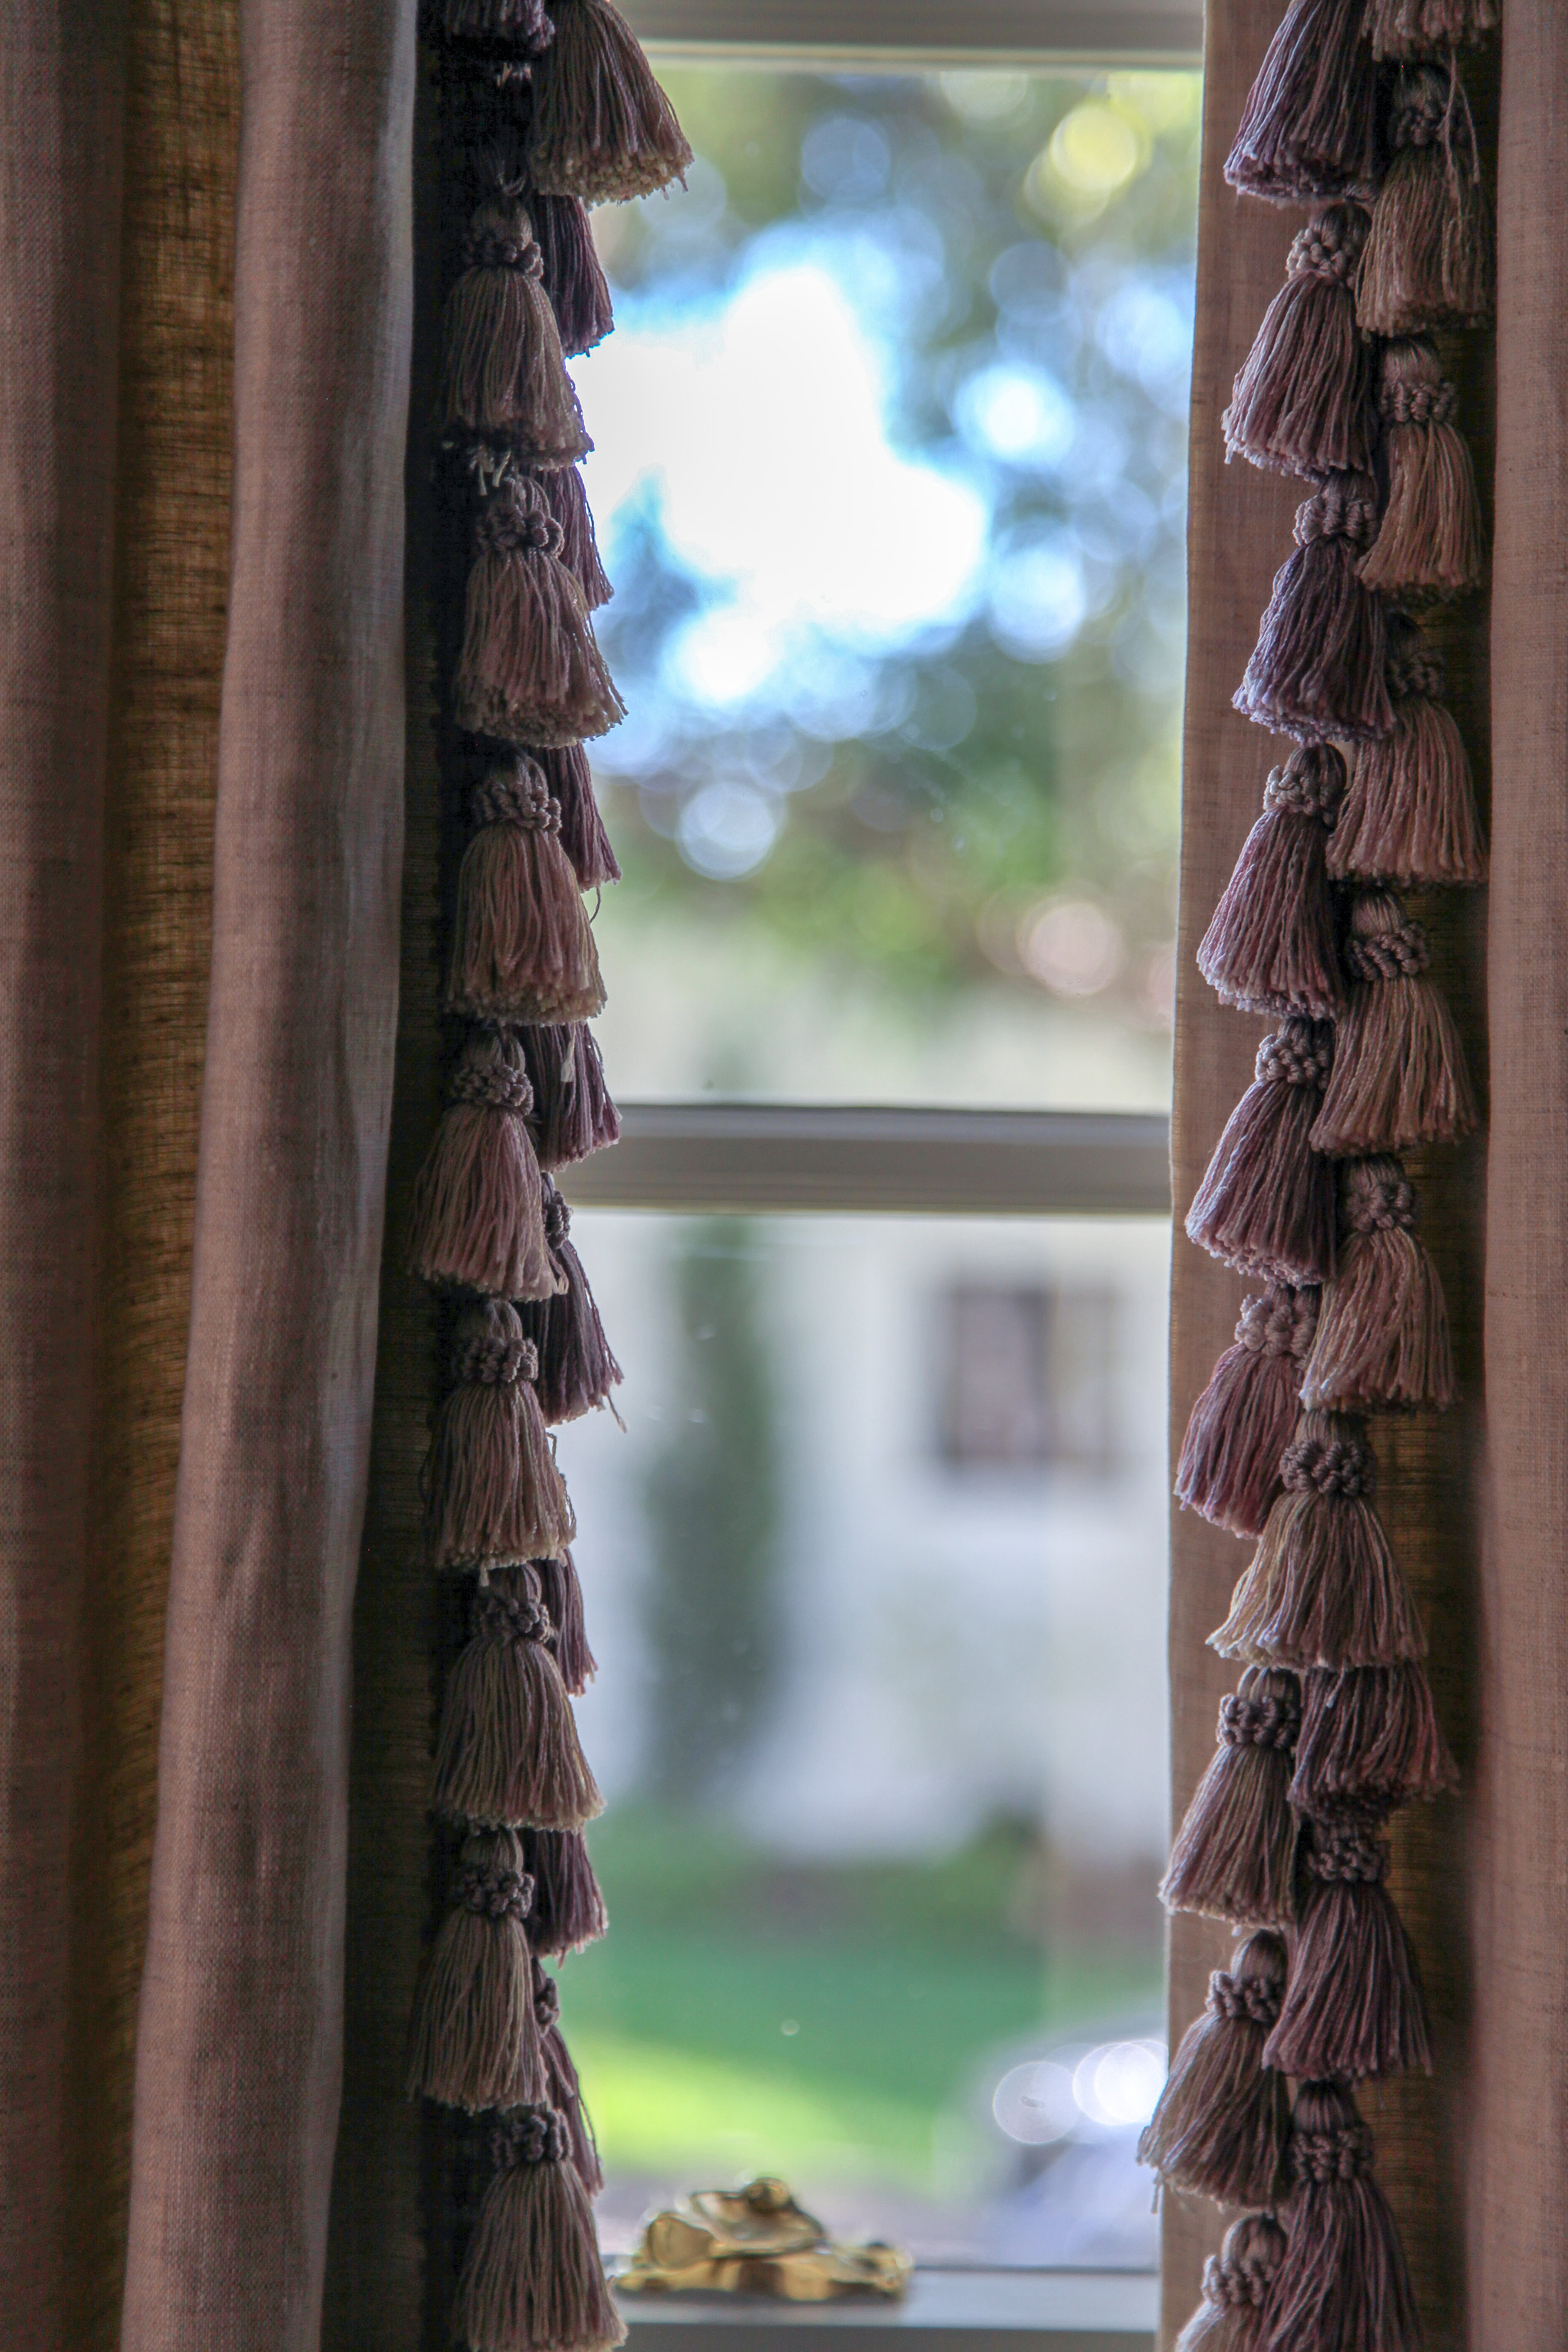 Here purple linen drapes are fringed with tassels in varying shades of purple.